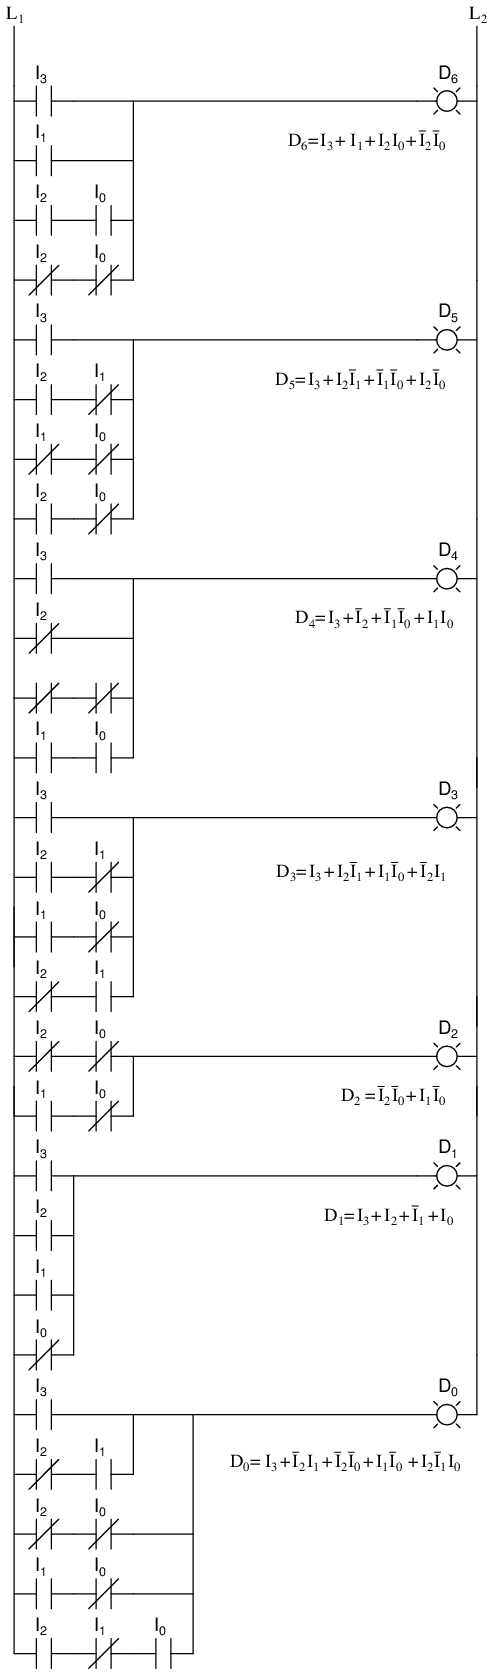 Lessons In Electric Circuits Volume Iv Digital Chapter 9 Adder Circuit Moreover 4 Bit Truth Table On 8